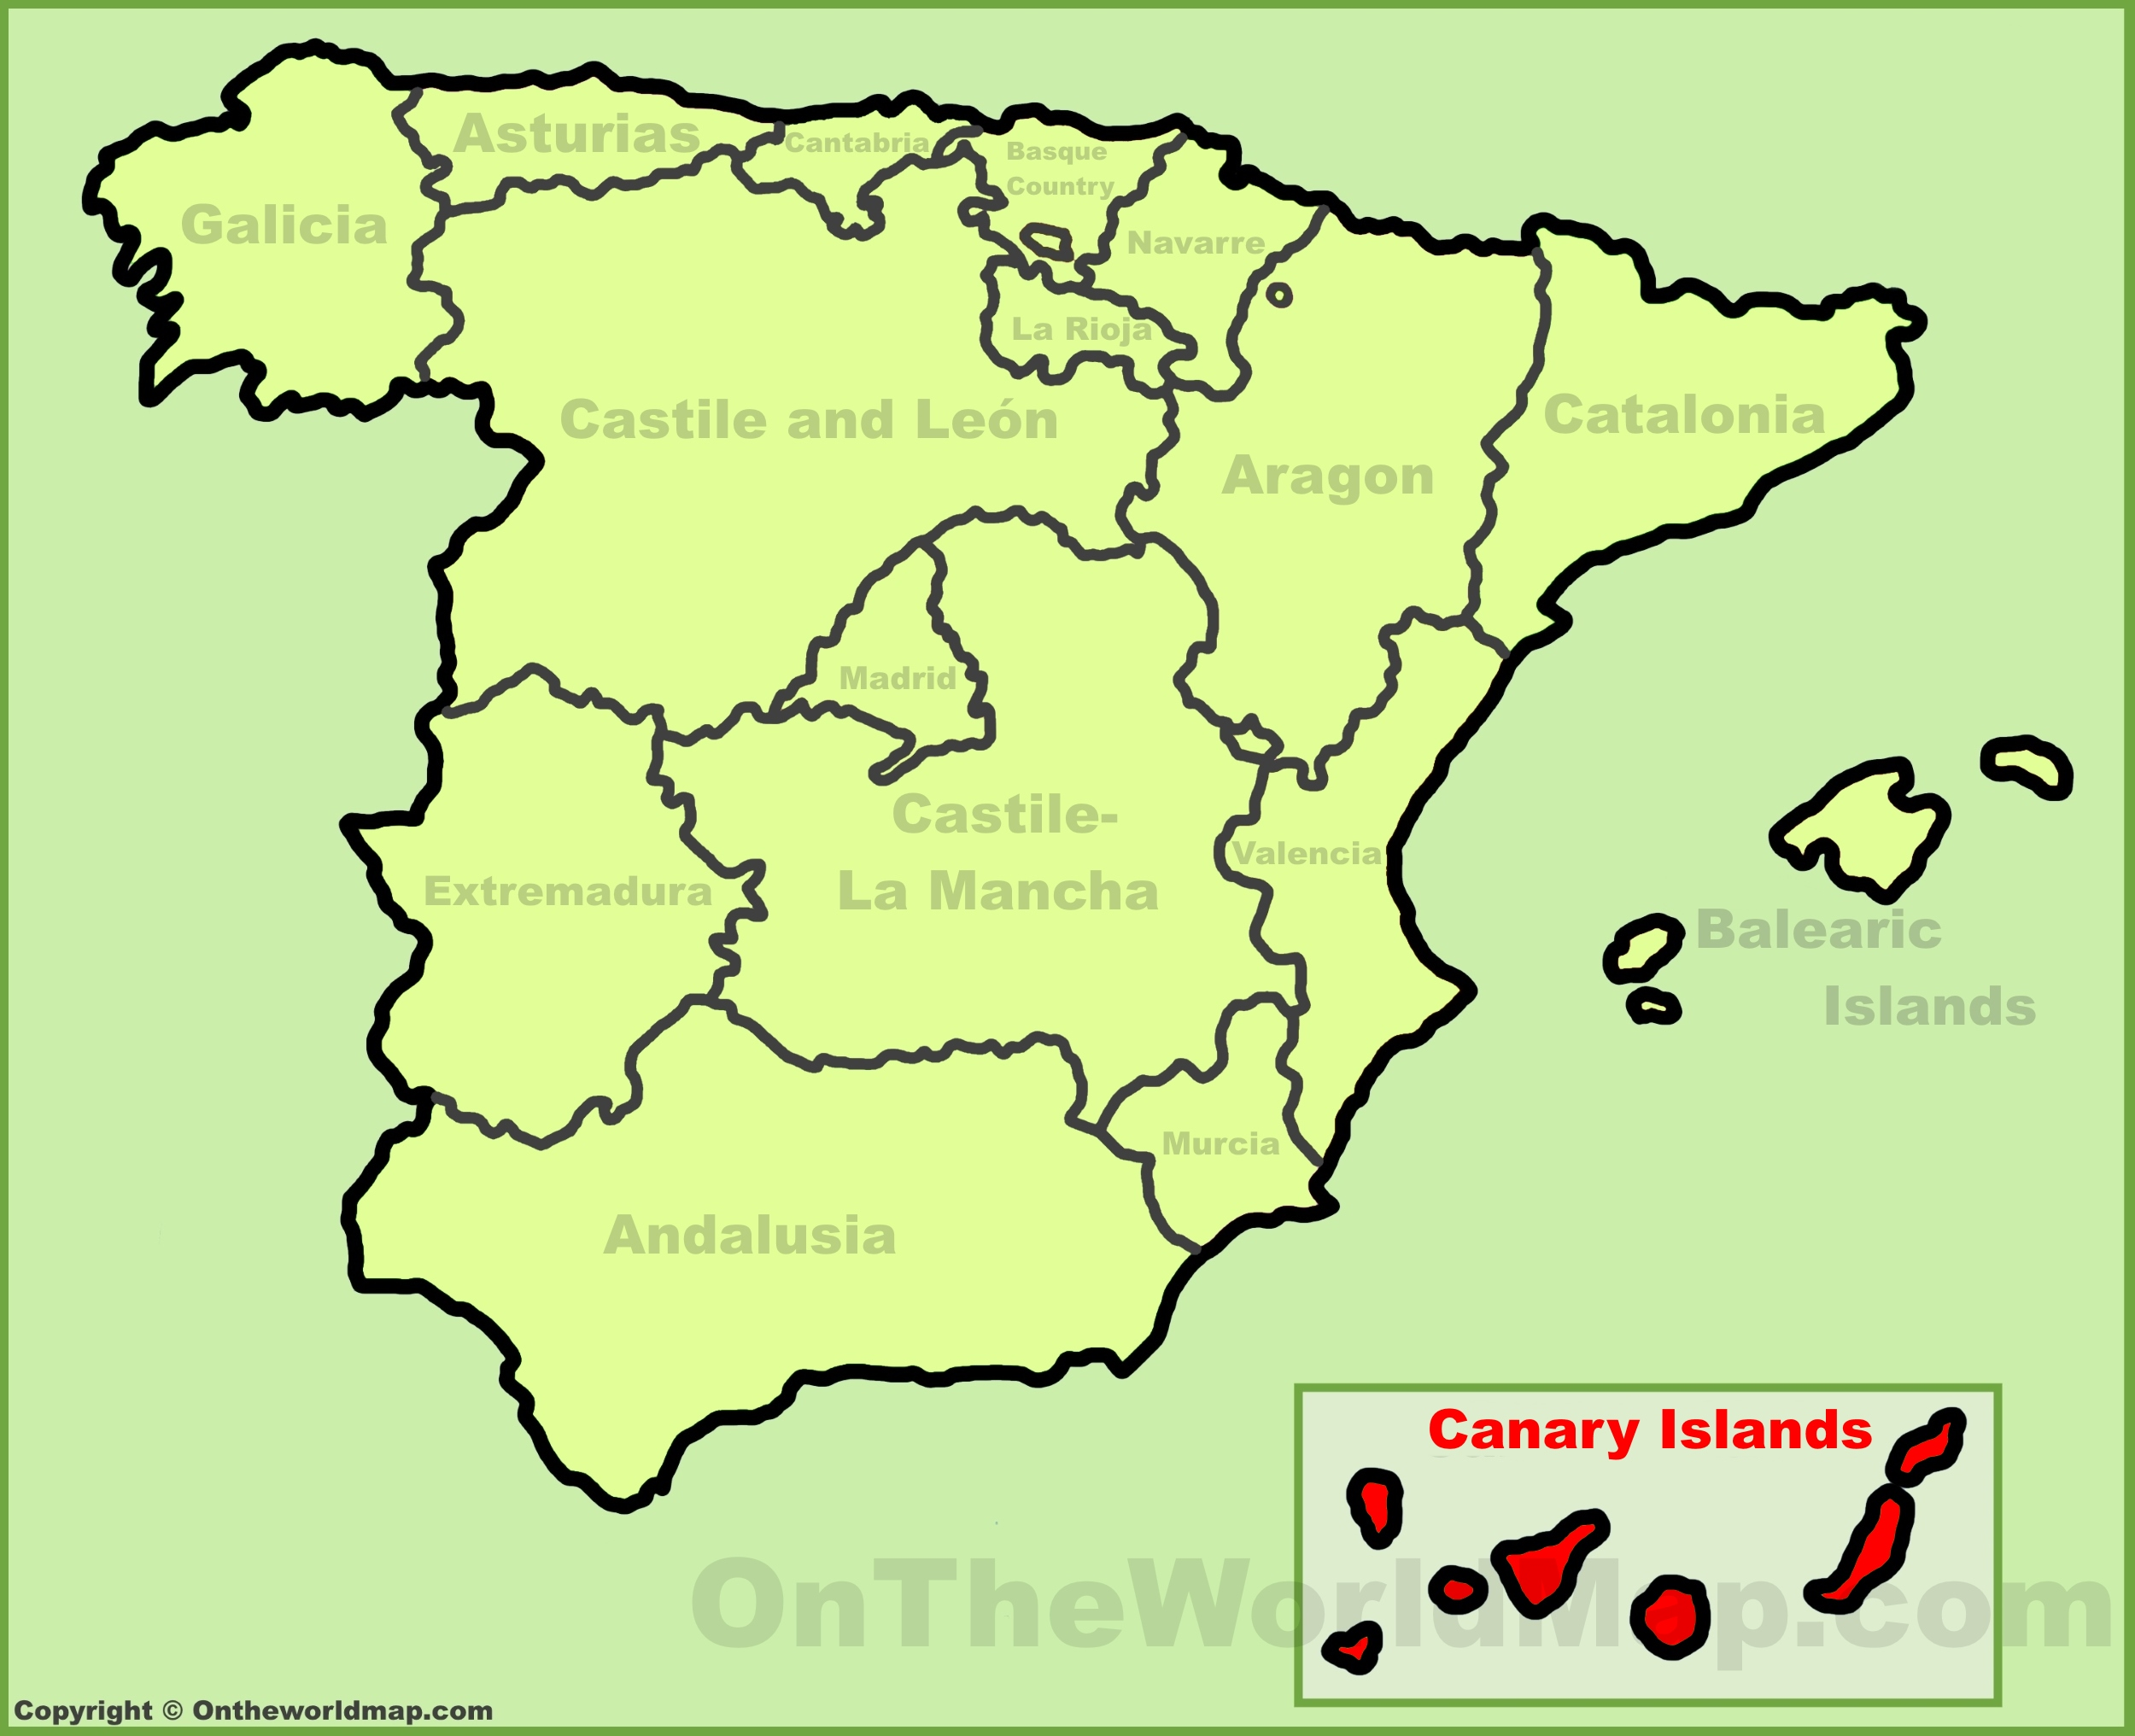 Canary Islands location on the Spain map on